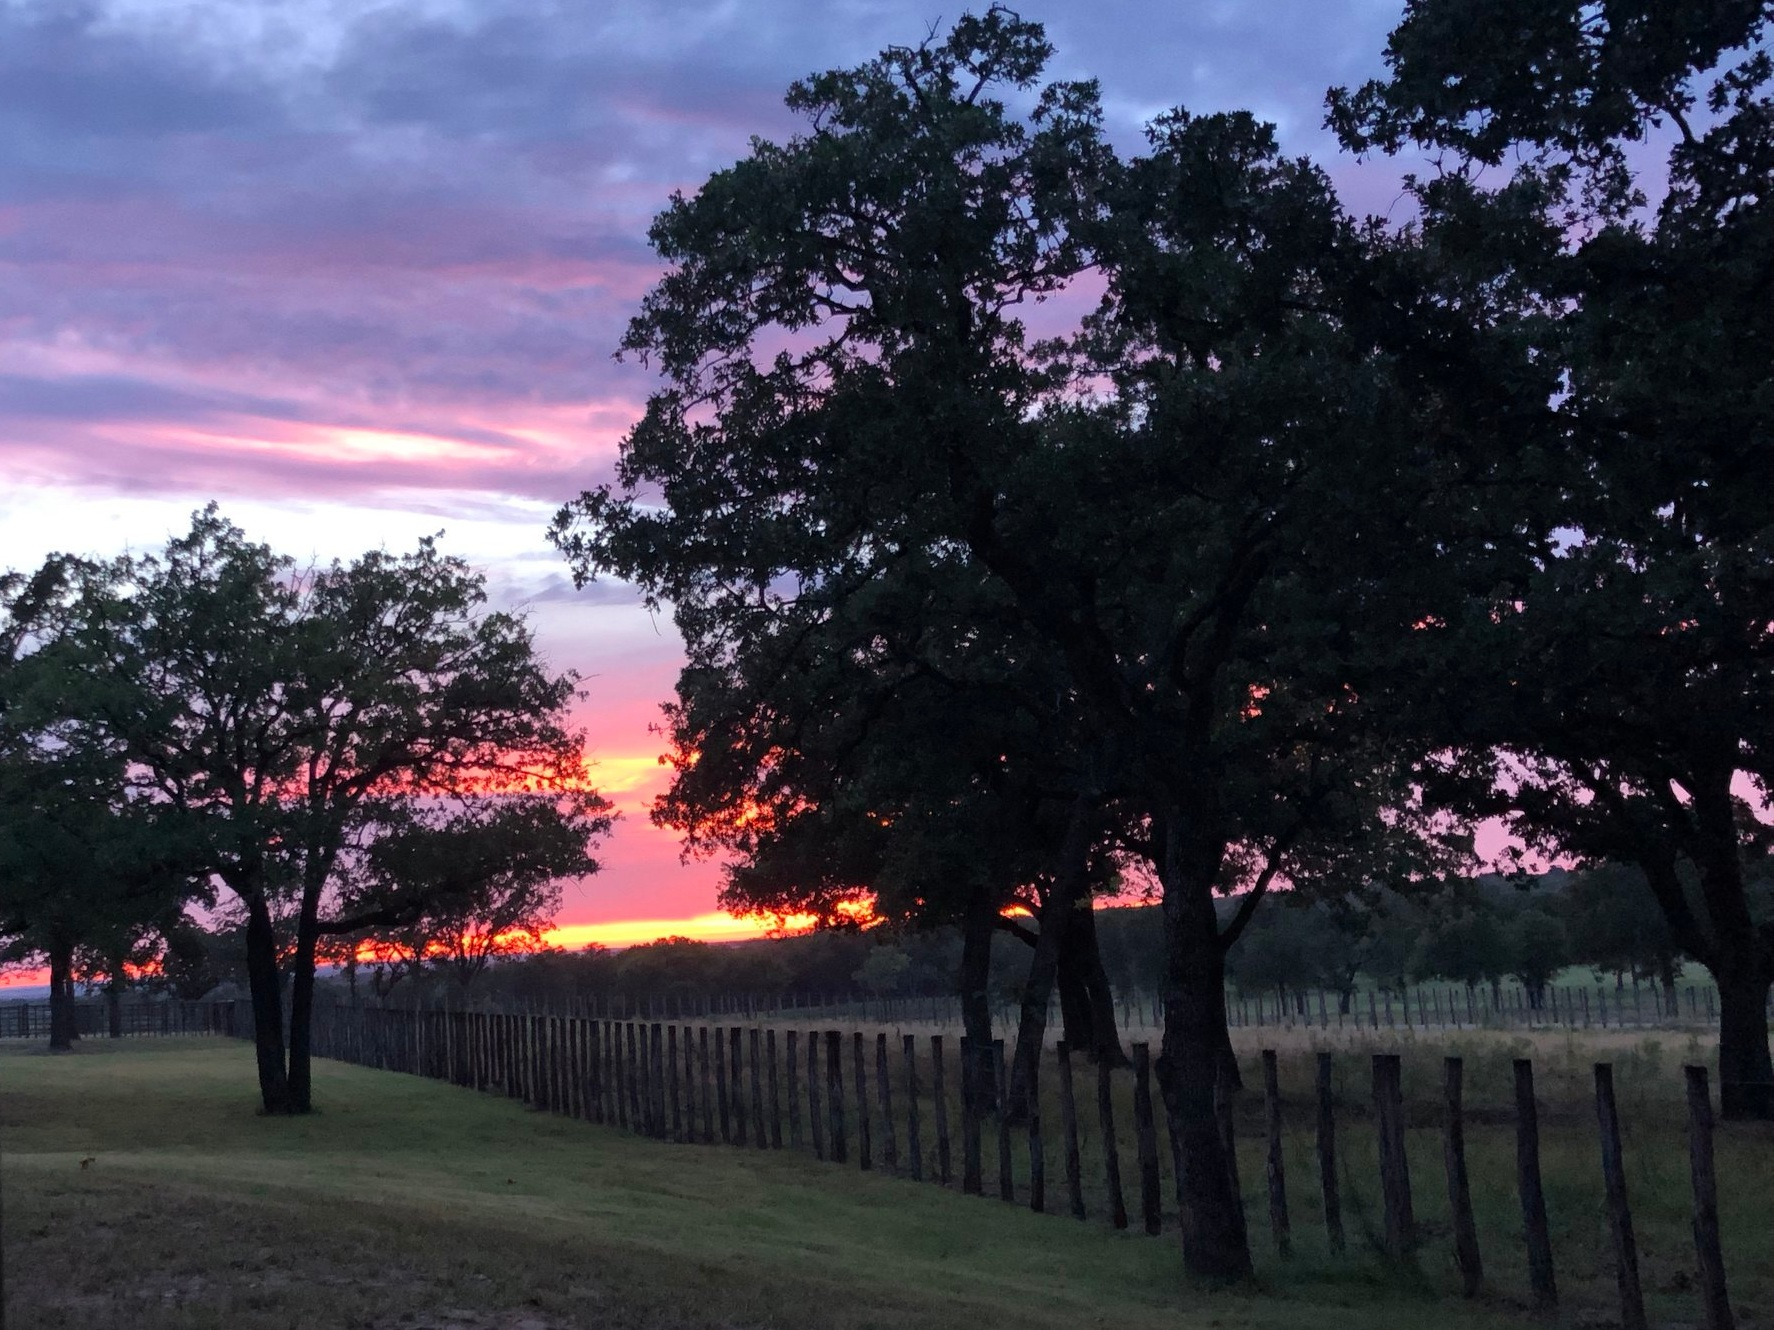 Sunset over a pasture in Weatherford, TX.